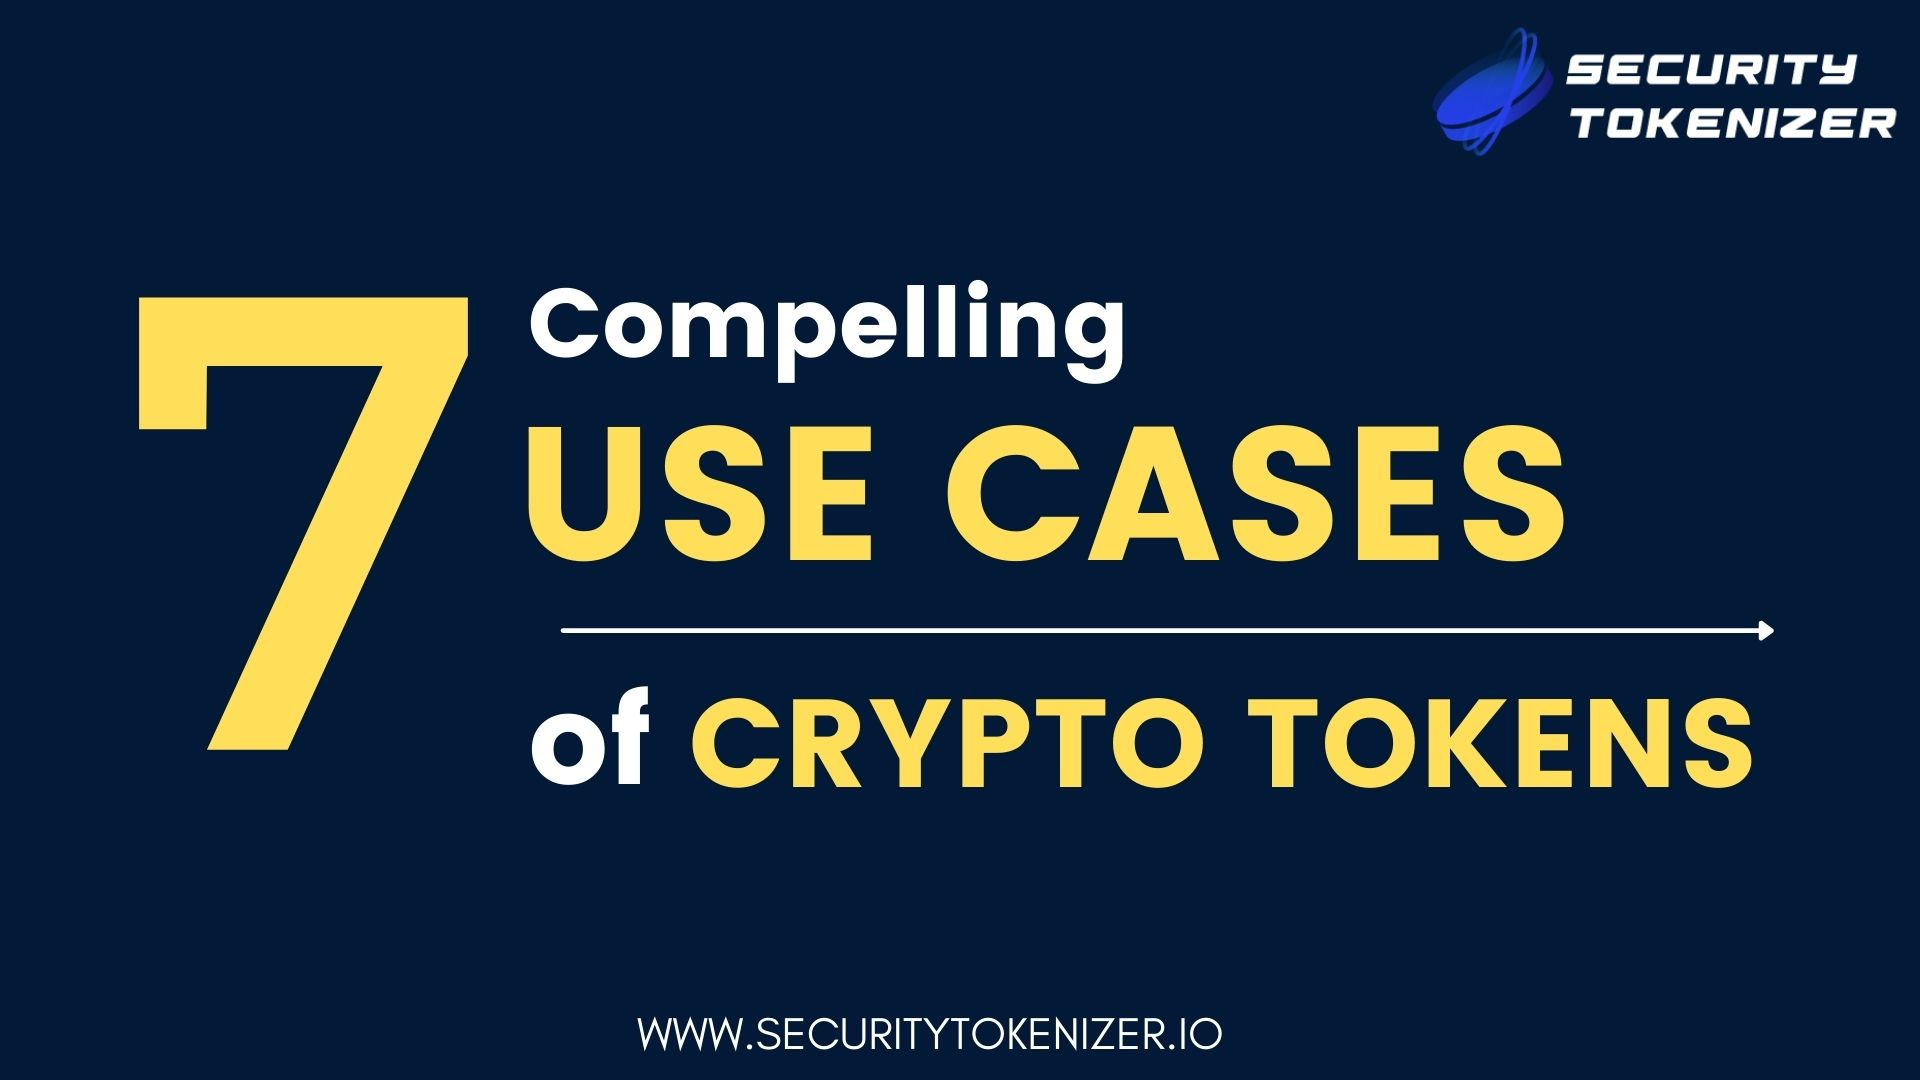 Top 7 Compelling Use Cases of Tokenization